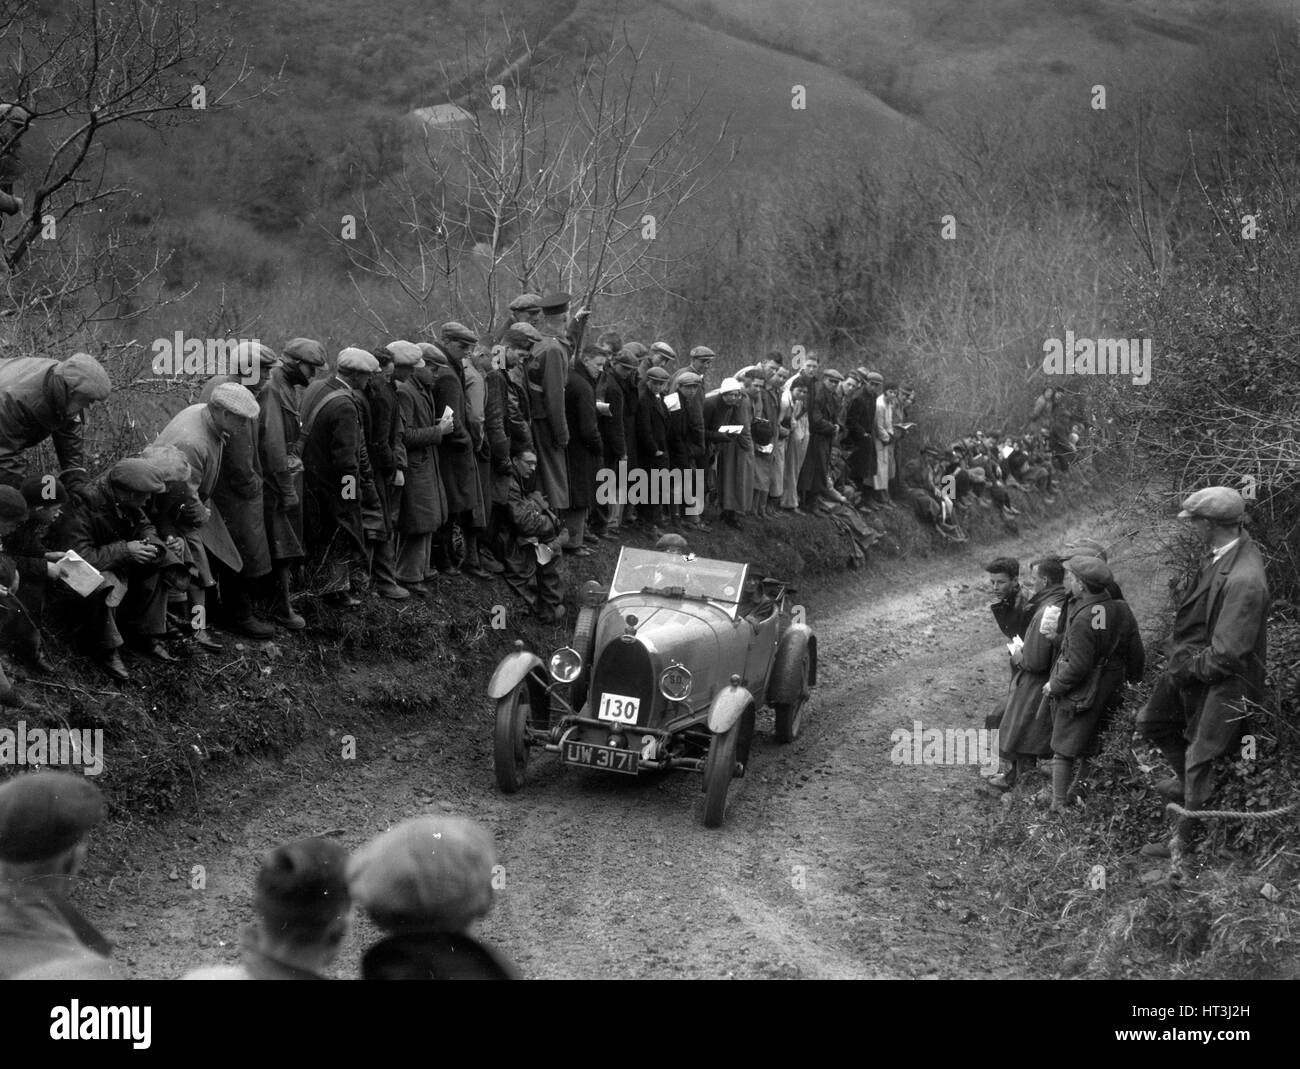 Bugatti Type 40 of KG Moss competing in the MCC Lands End Trial, 1935. Artist: Bill Brunell. - Stock Image